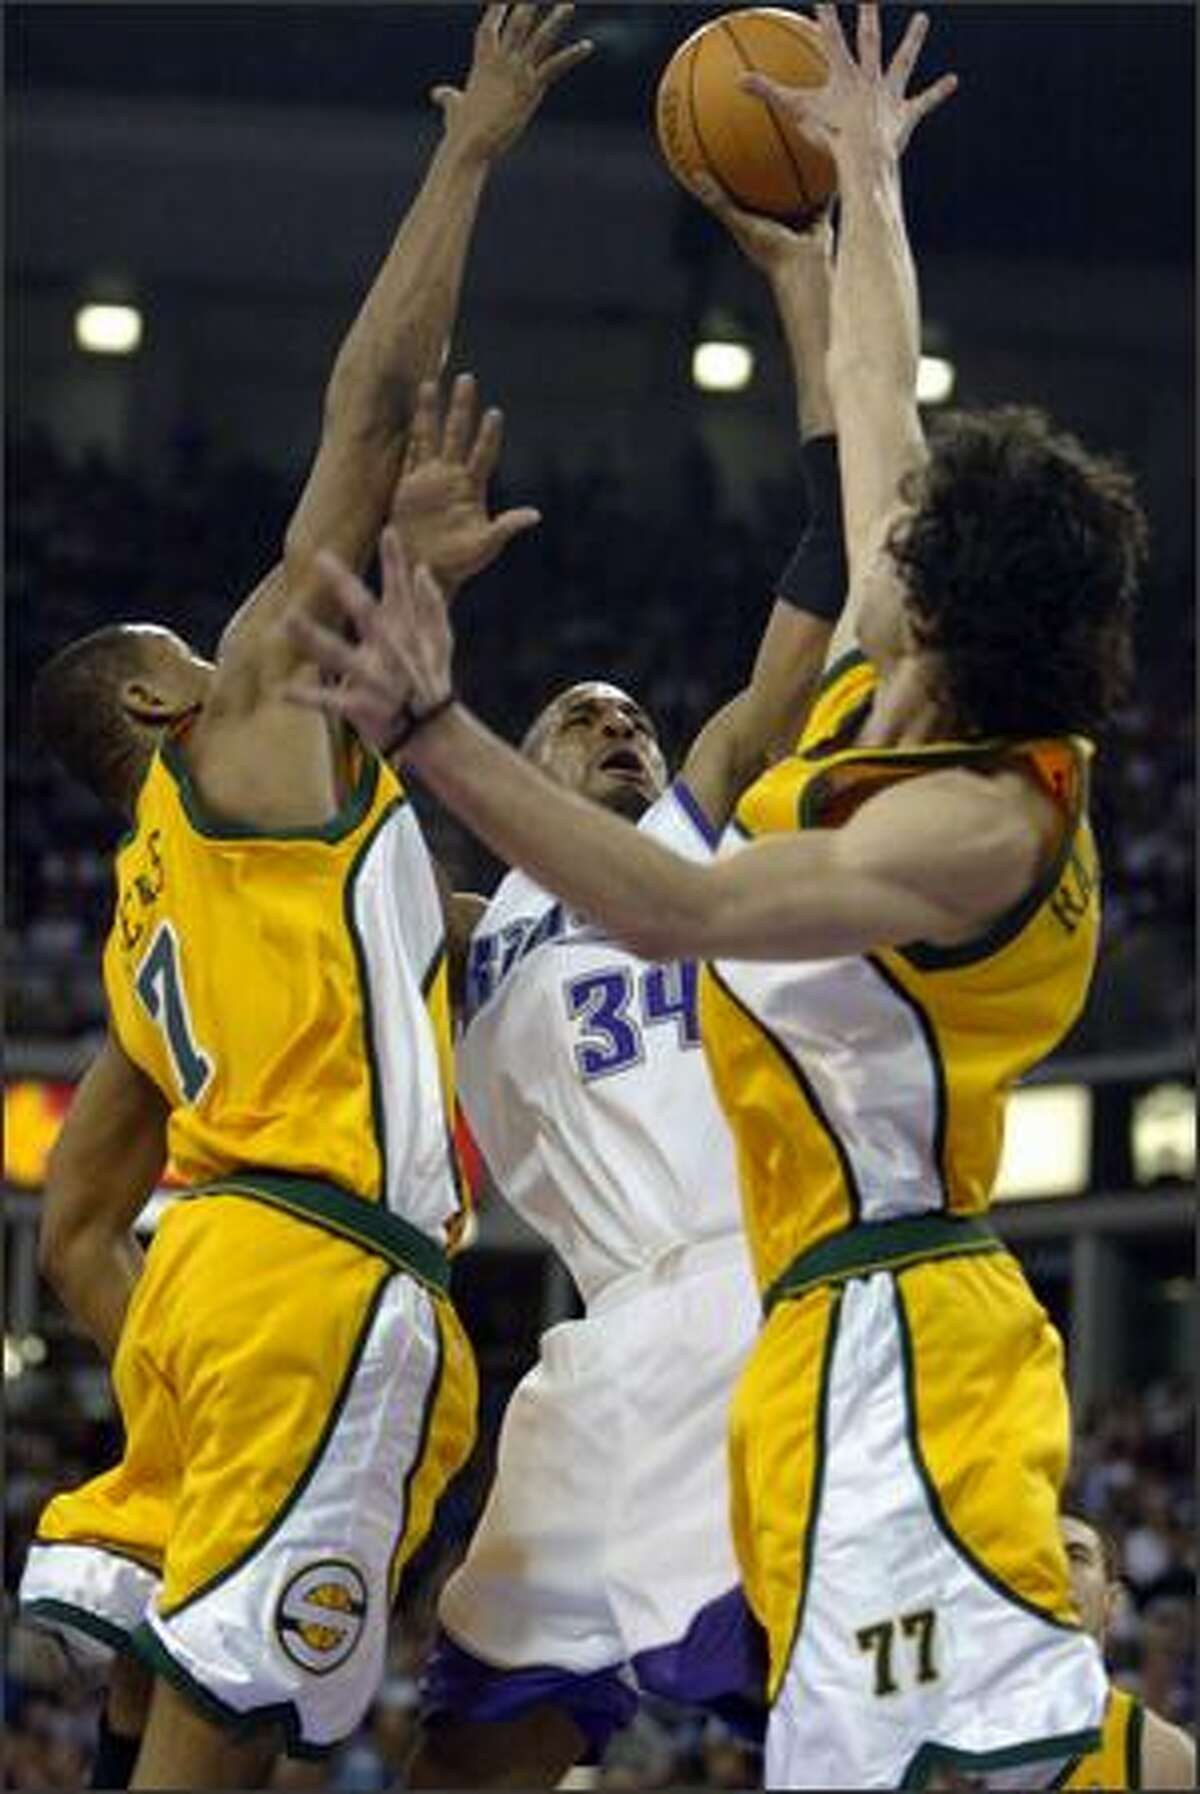 Rashad Lewis and Vladimir Radmanovic put up a block on Sacramento's Corliss Williamson.